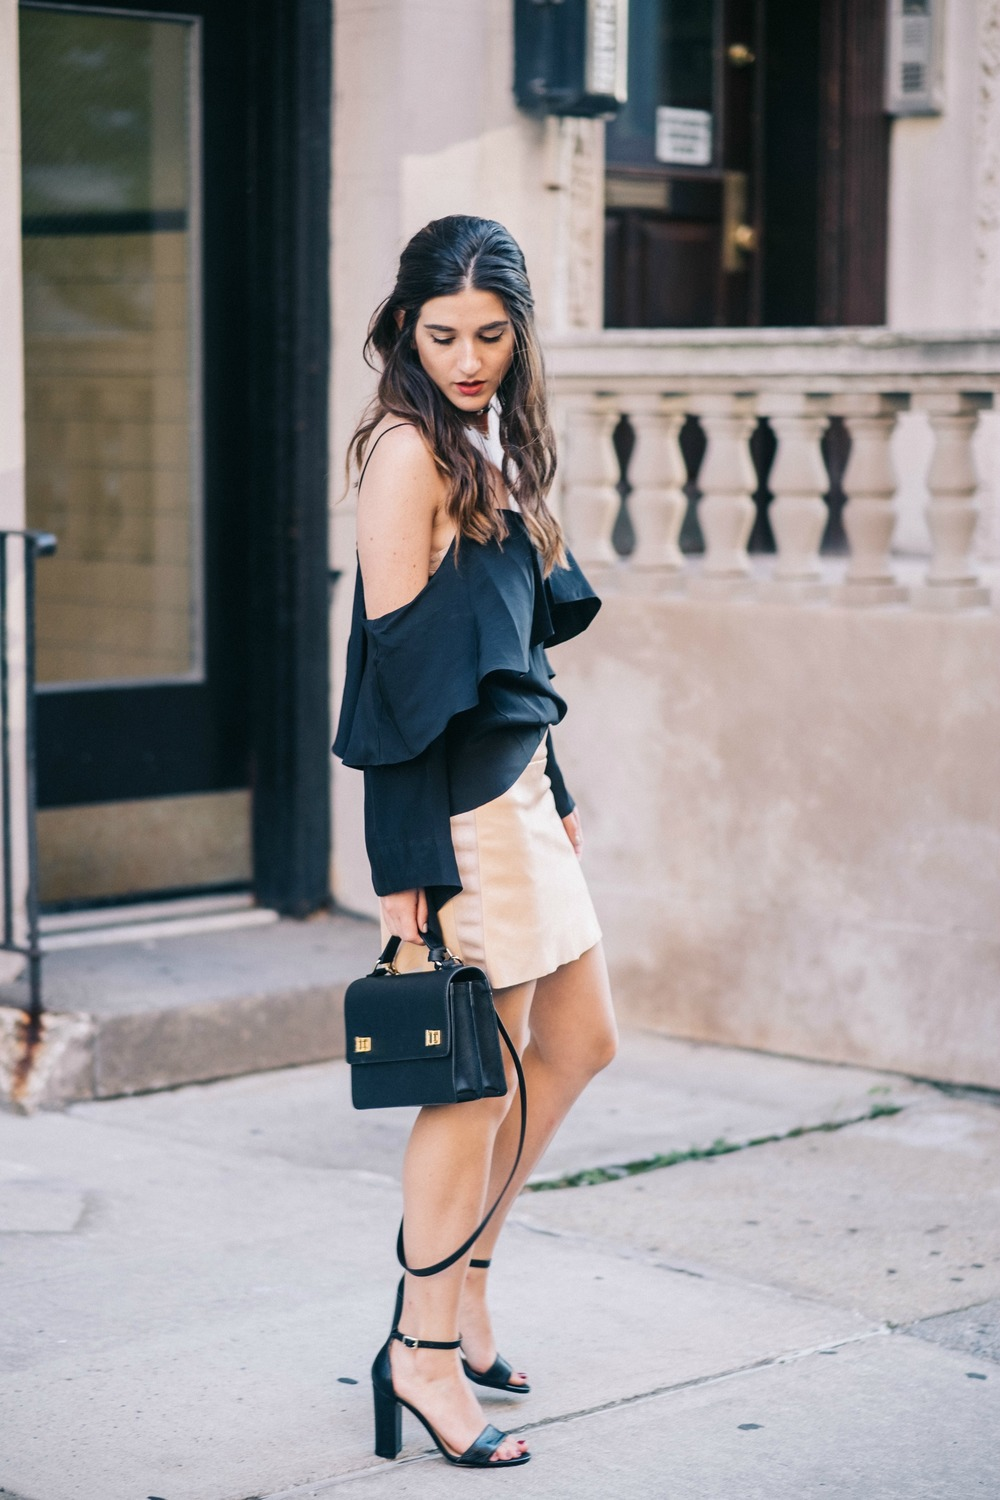 The Perfect Everyday Bag Henri Bendel Louboutins & Love Fashion Blog Esther Santer NYC Street Style Blogger Outfit OOTD Trendy Jay Godfrey Black Cold Shoulder Top Pink Pleather Skirt Zara Ivanka Trump Klover Sandals Heels Girl Women Purse Hair Inspo.jpg